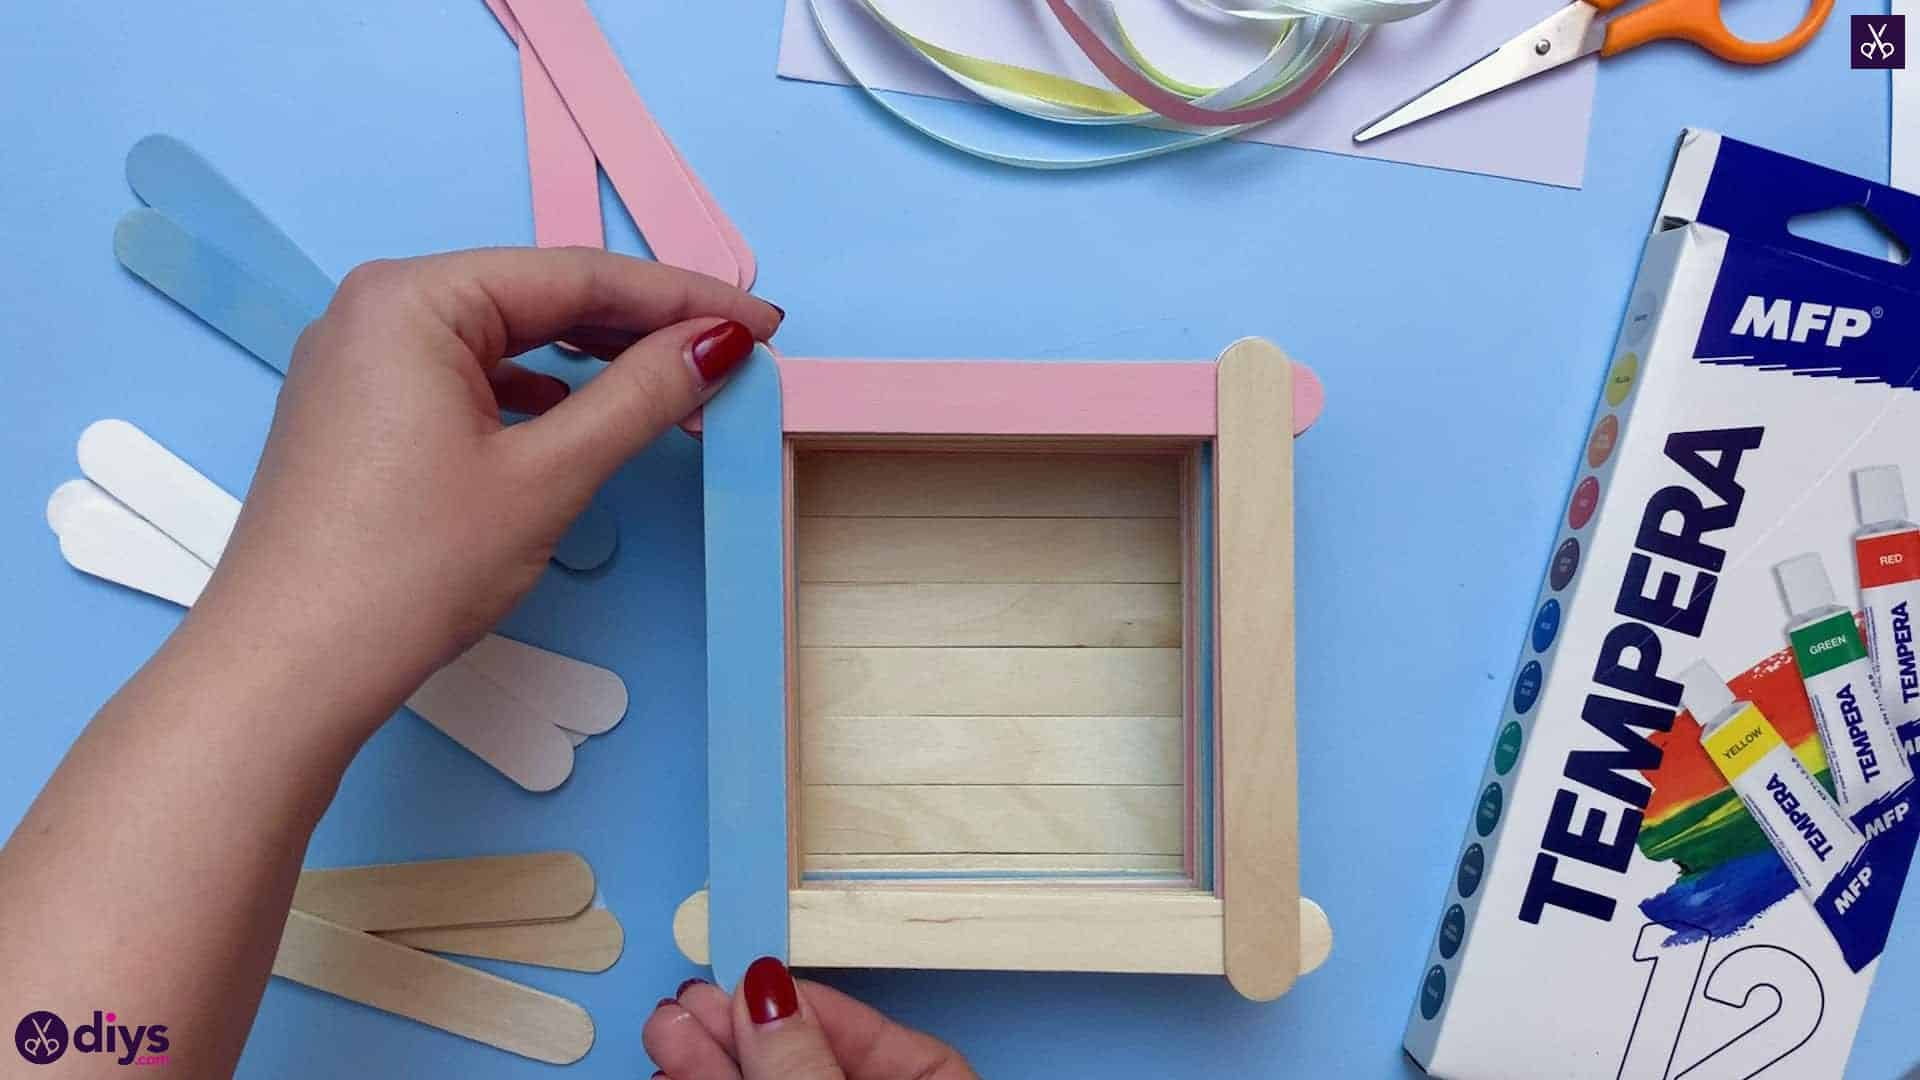 Diy popsicle stick jewelry box color